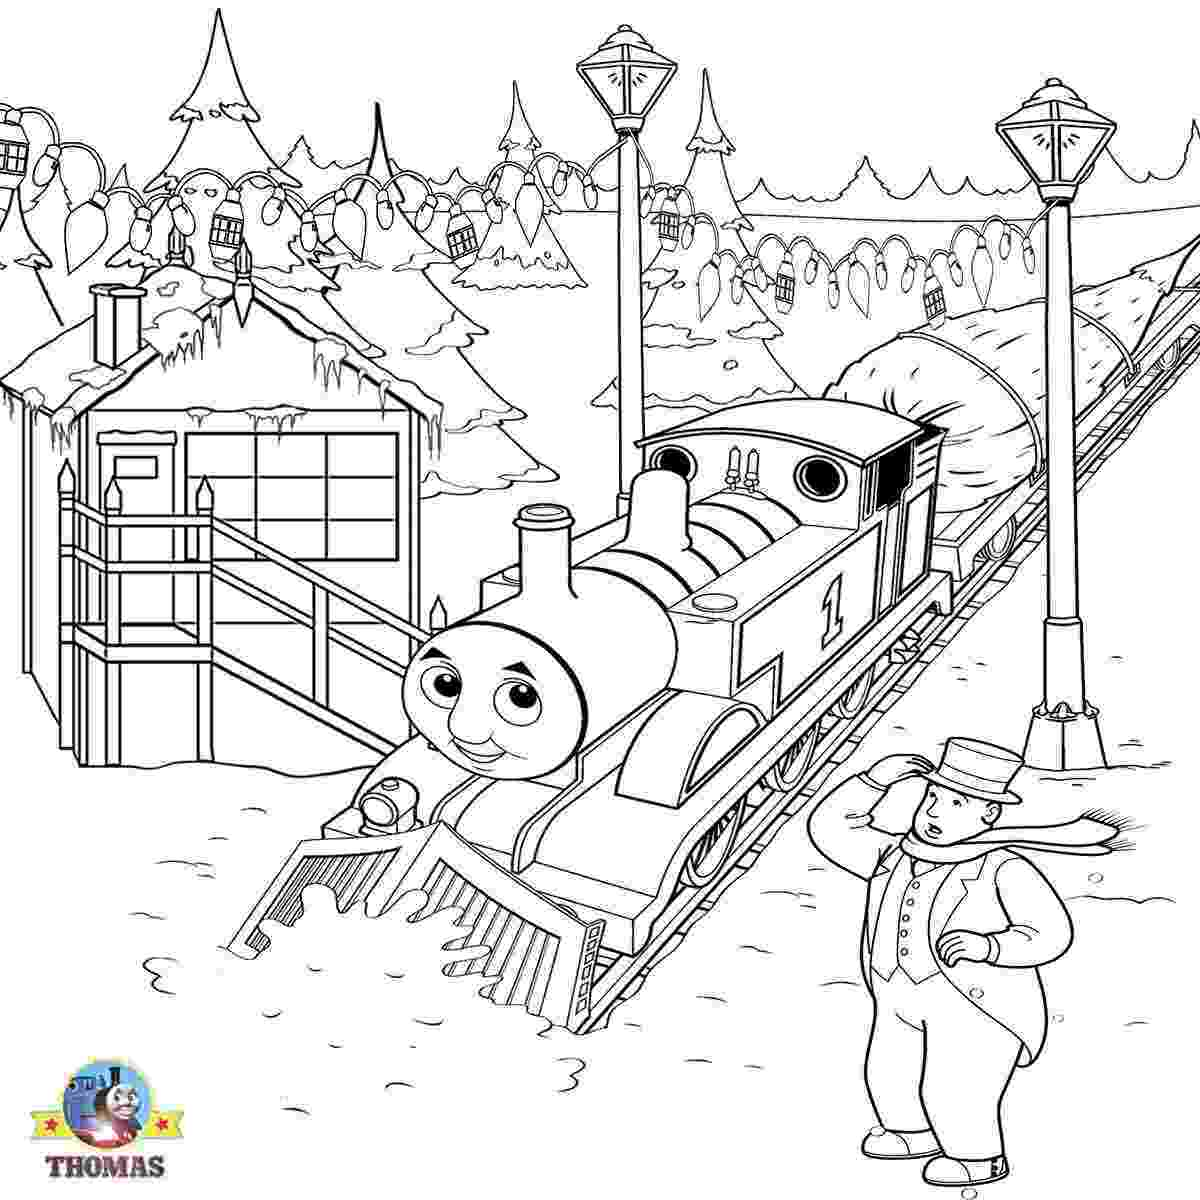 thomas and friends coloring pages thomas friends coloring pages educational fun kids coloring and thomas friends pages